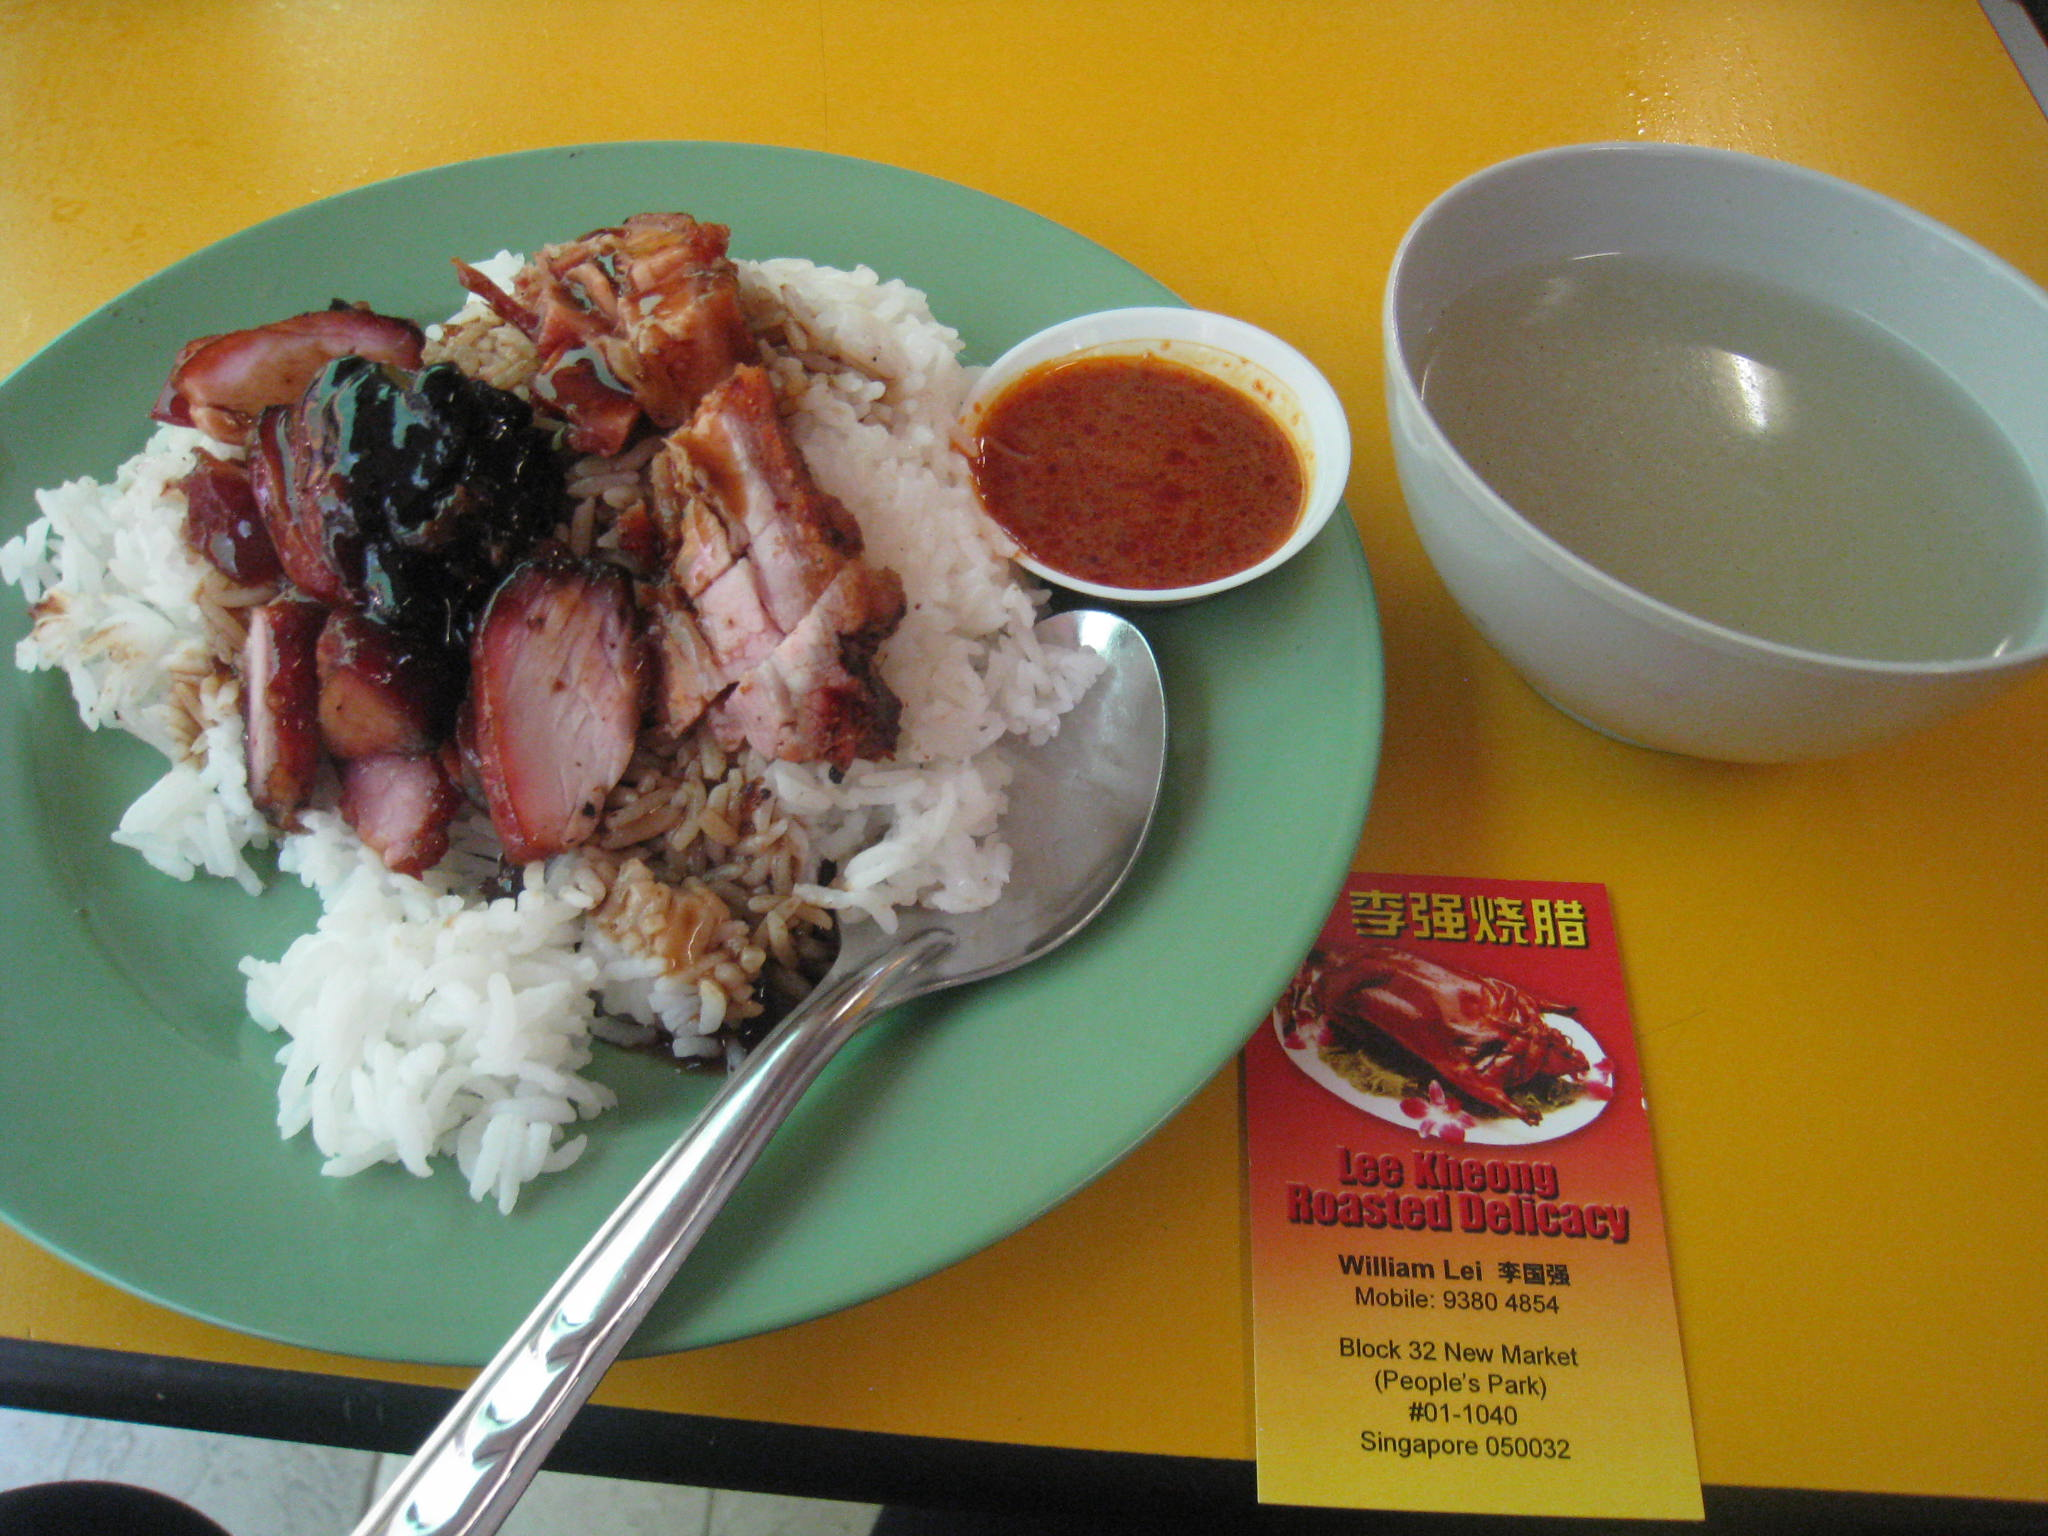 Lee Kheong Roasted Delicacy(People\'s Park FC)_c0212604_630837.jpg